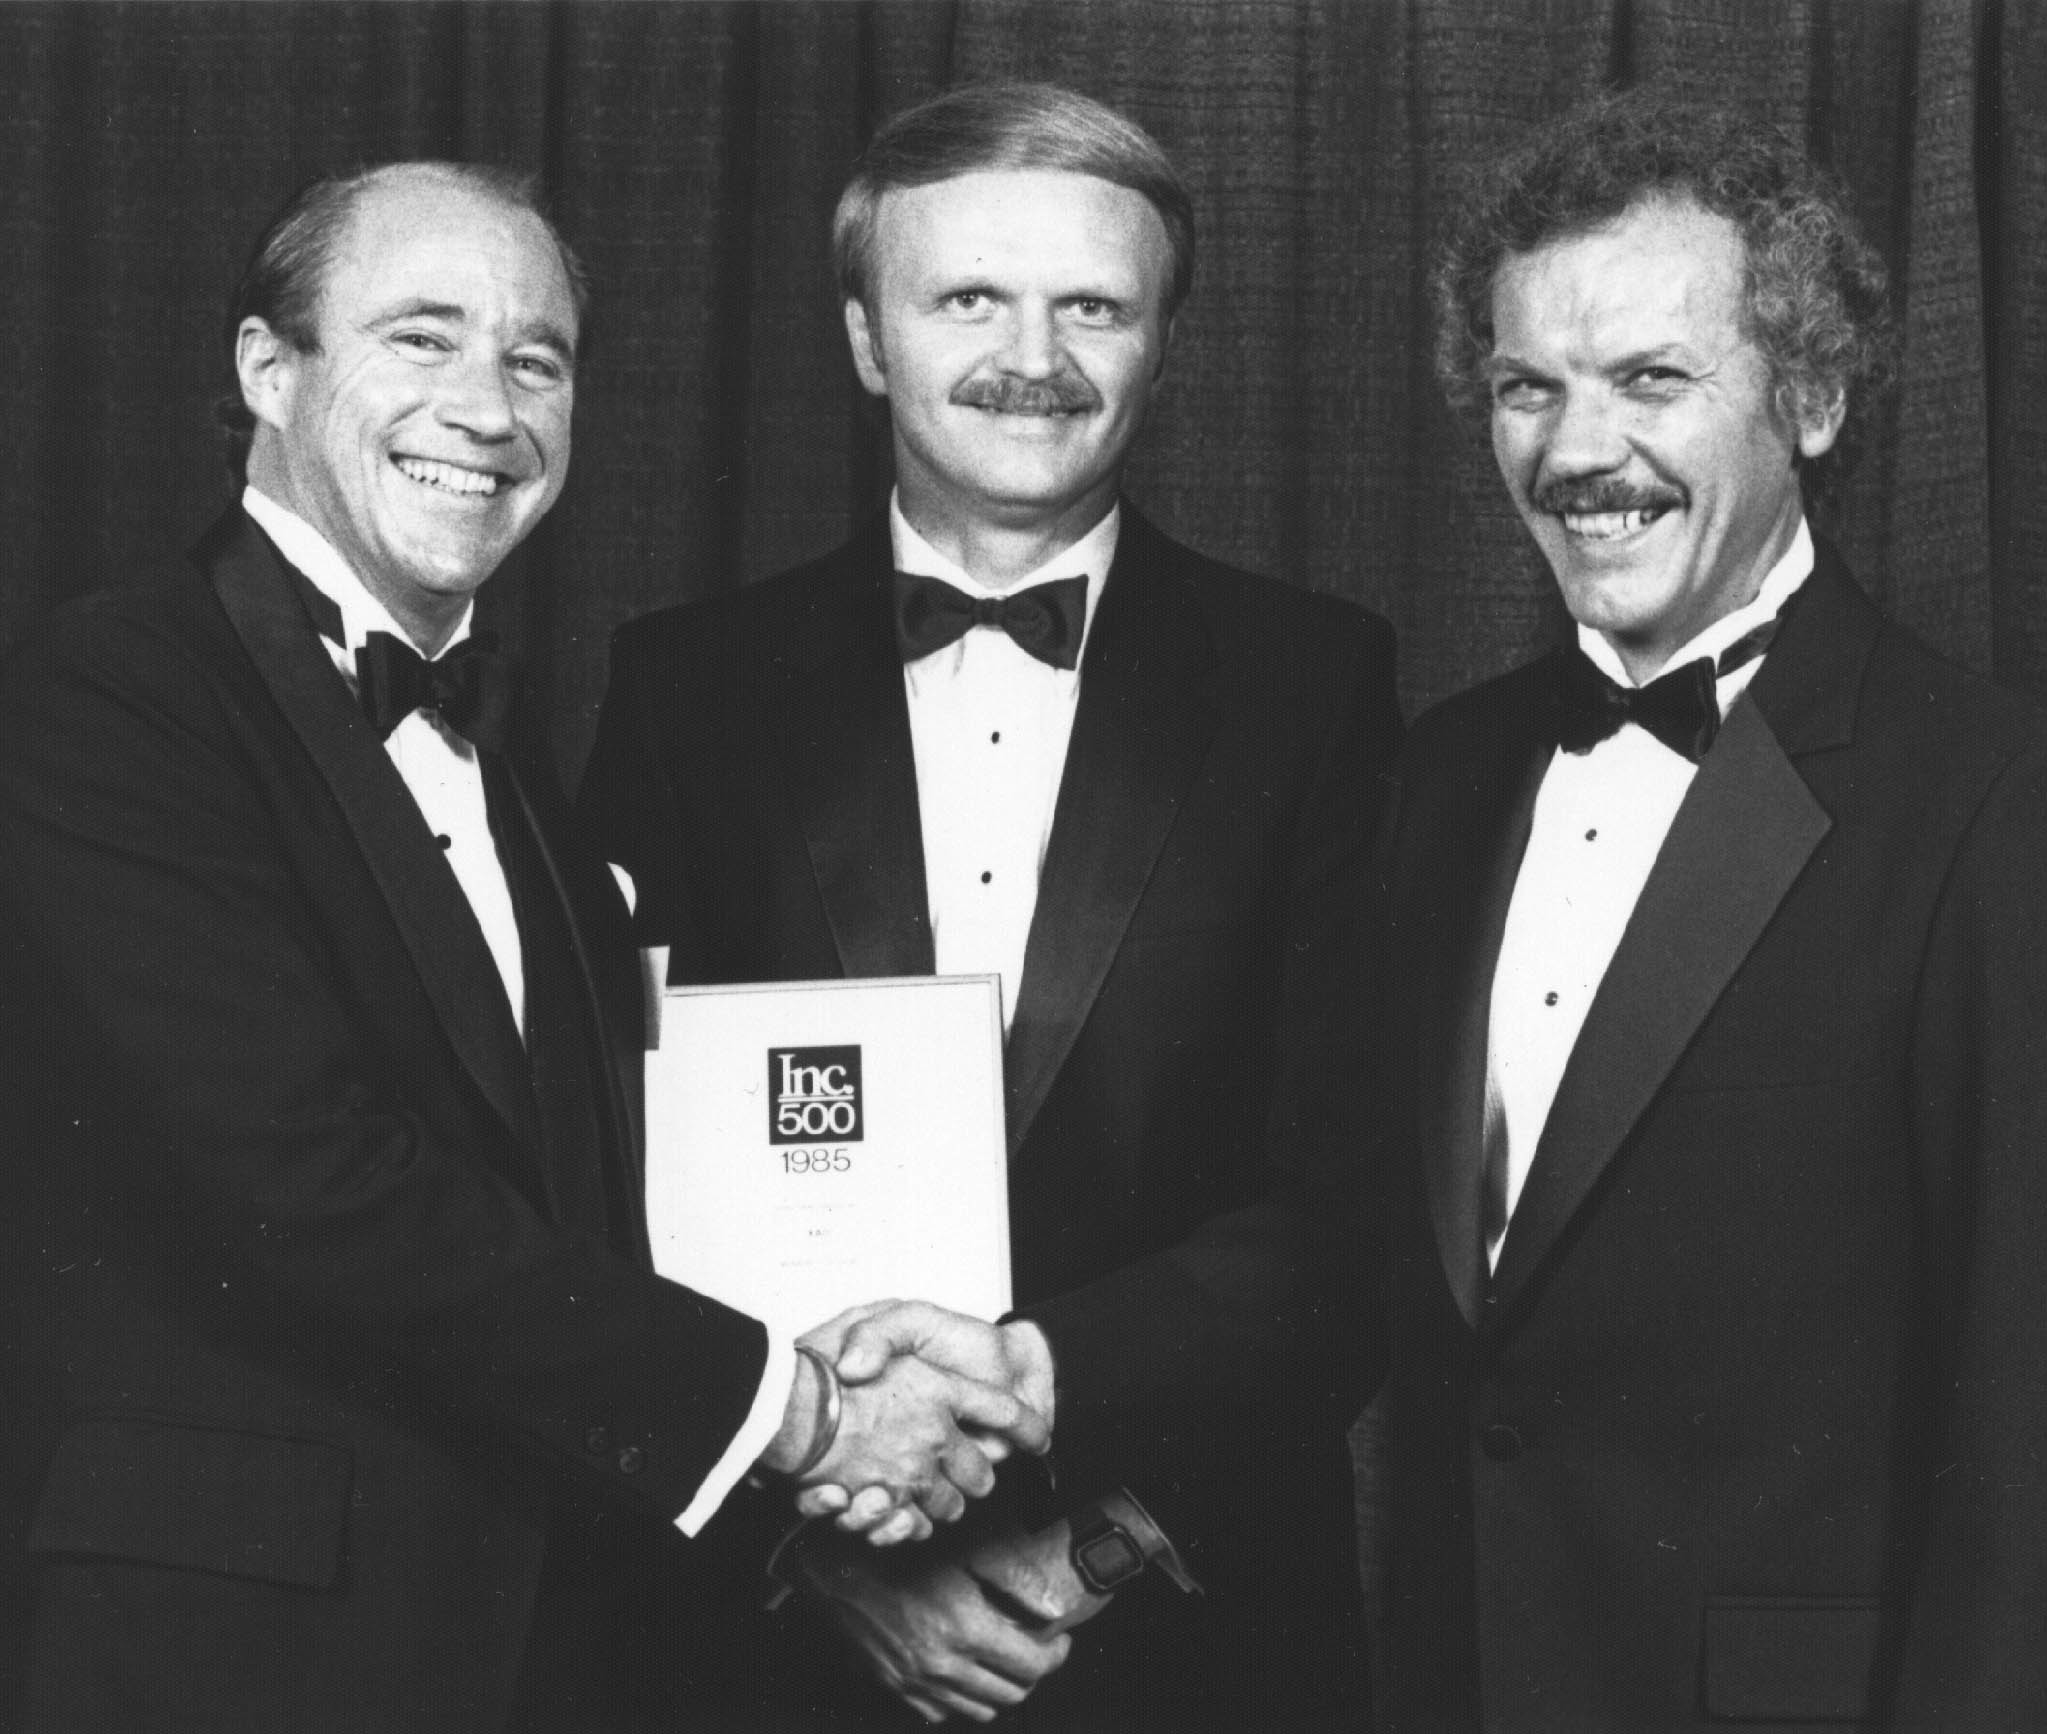 Bob and Heinz accepting the INC 500 award, 1986